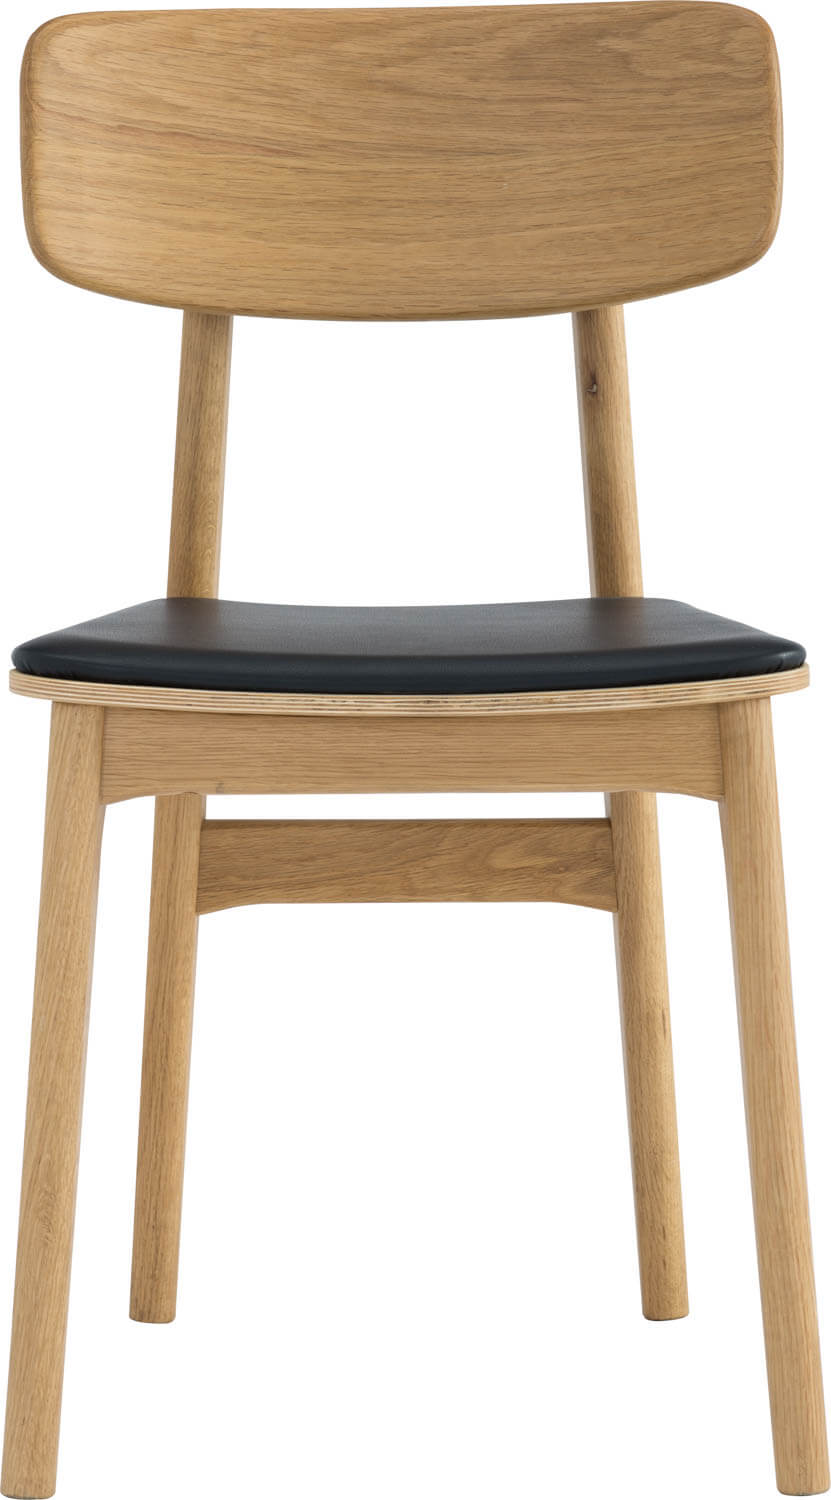 TACY Dining Chair